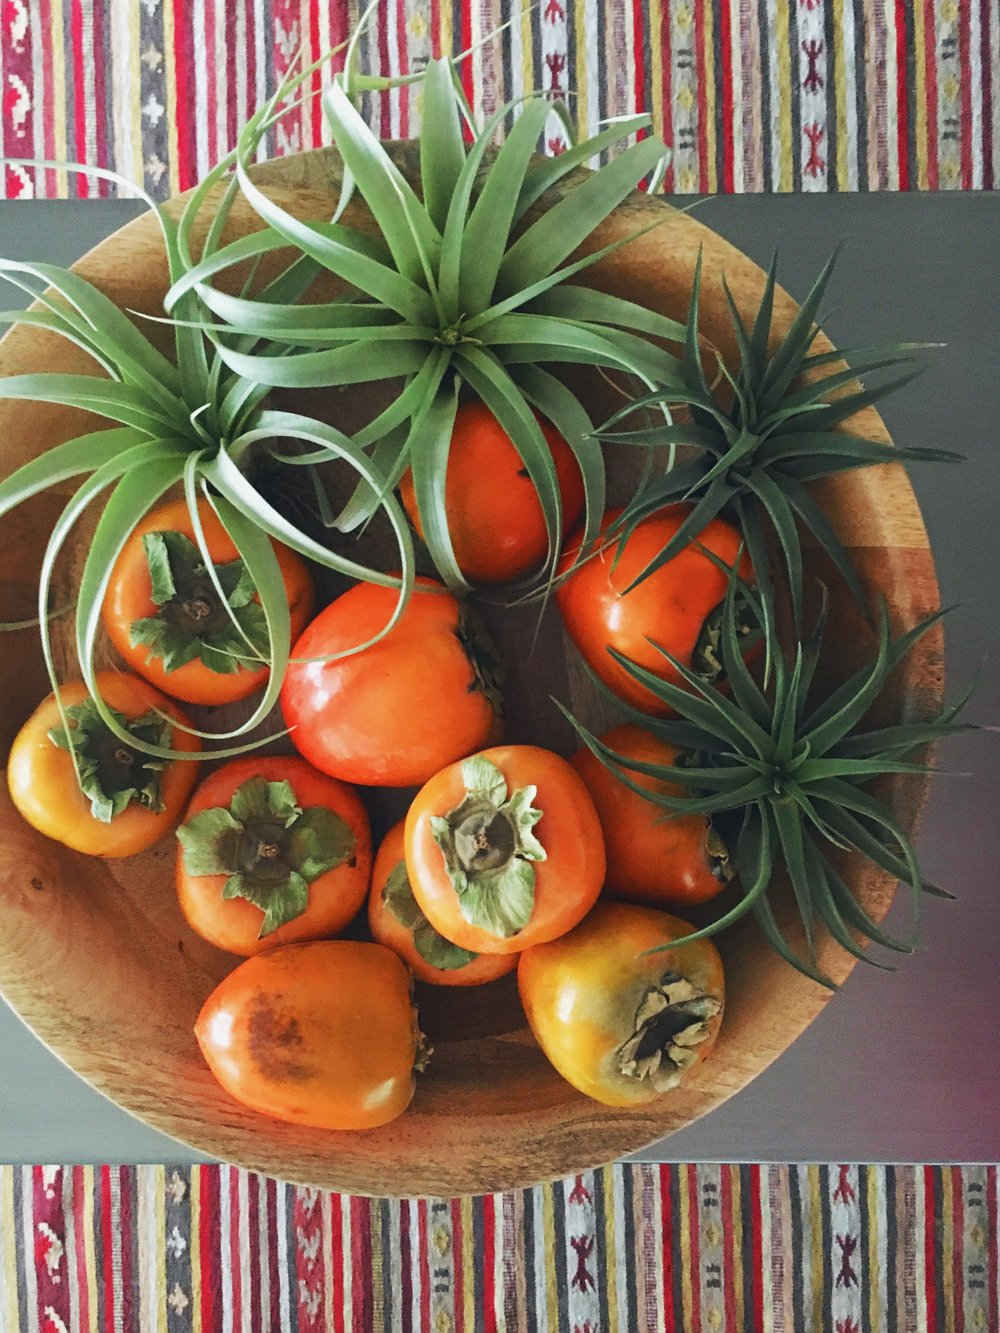 Persimmons and airplants | DrinkingwithChickens.com